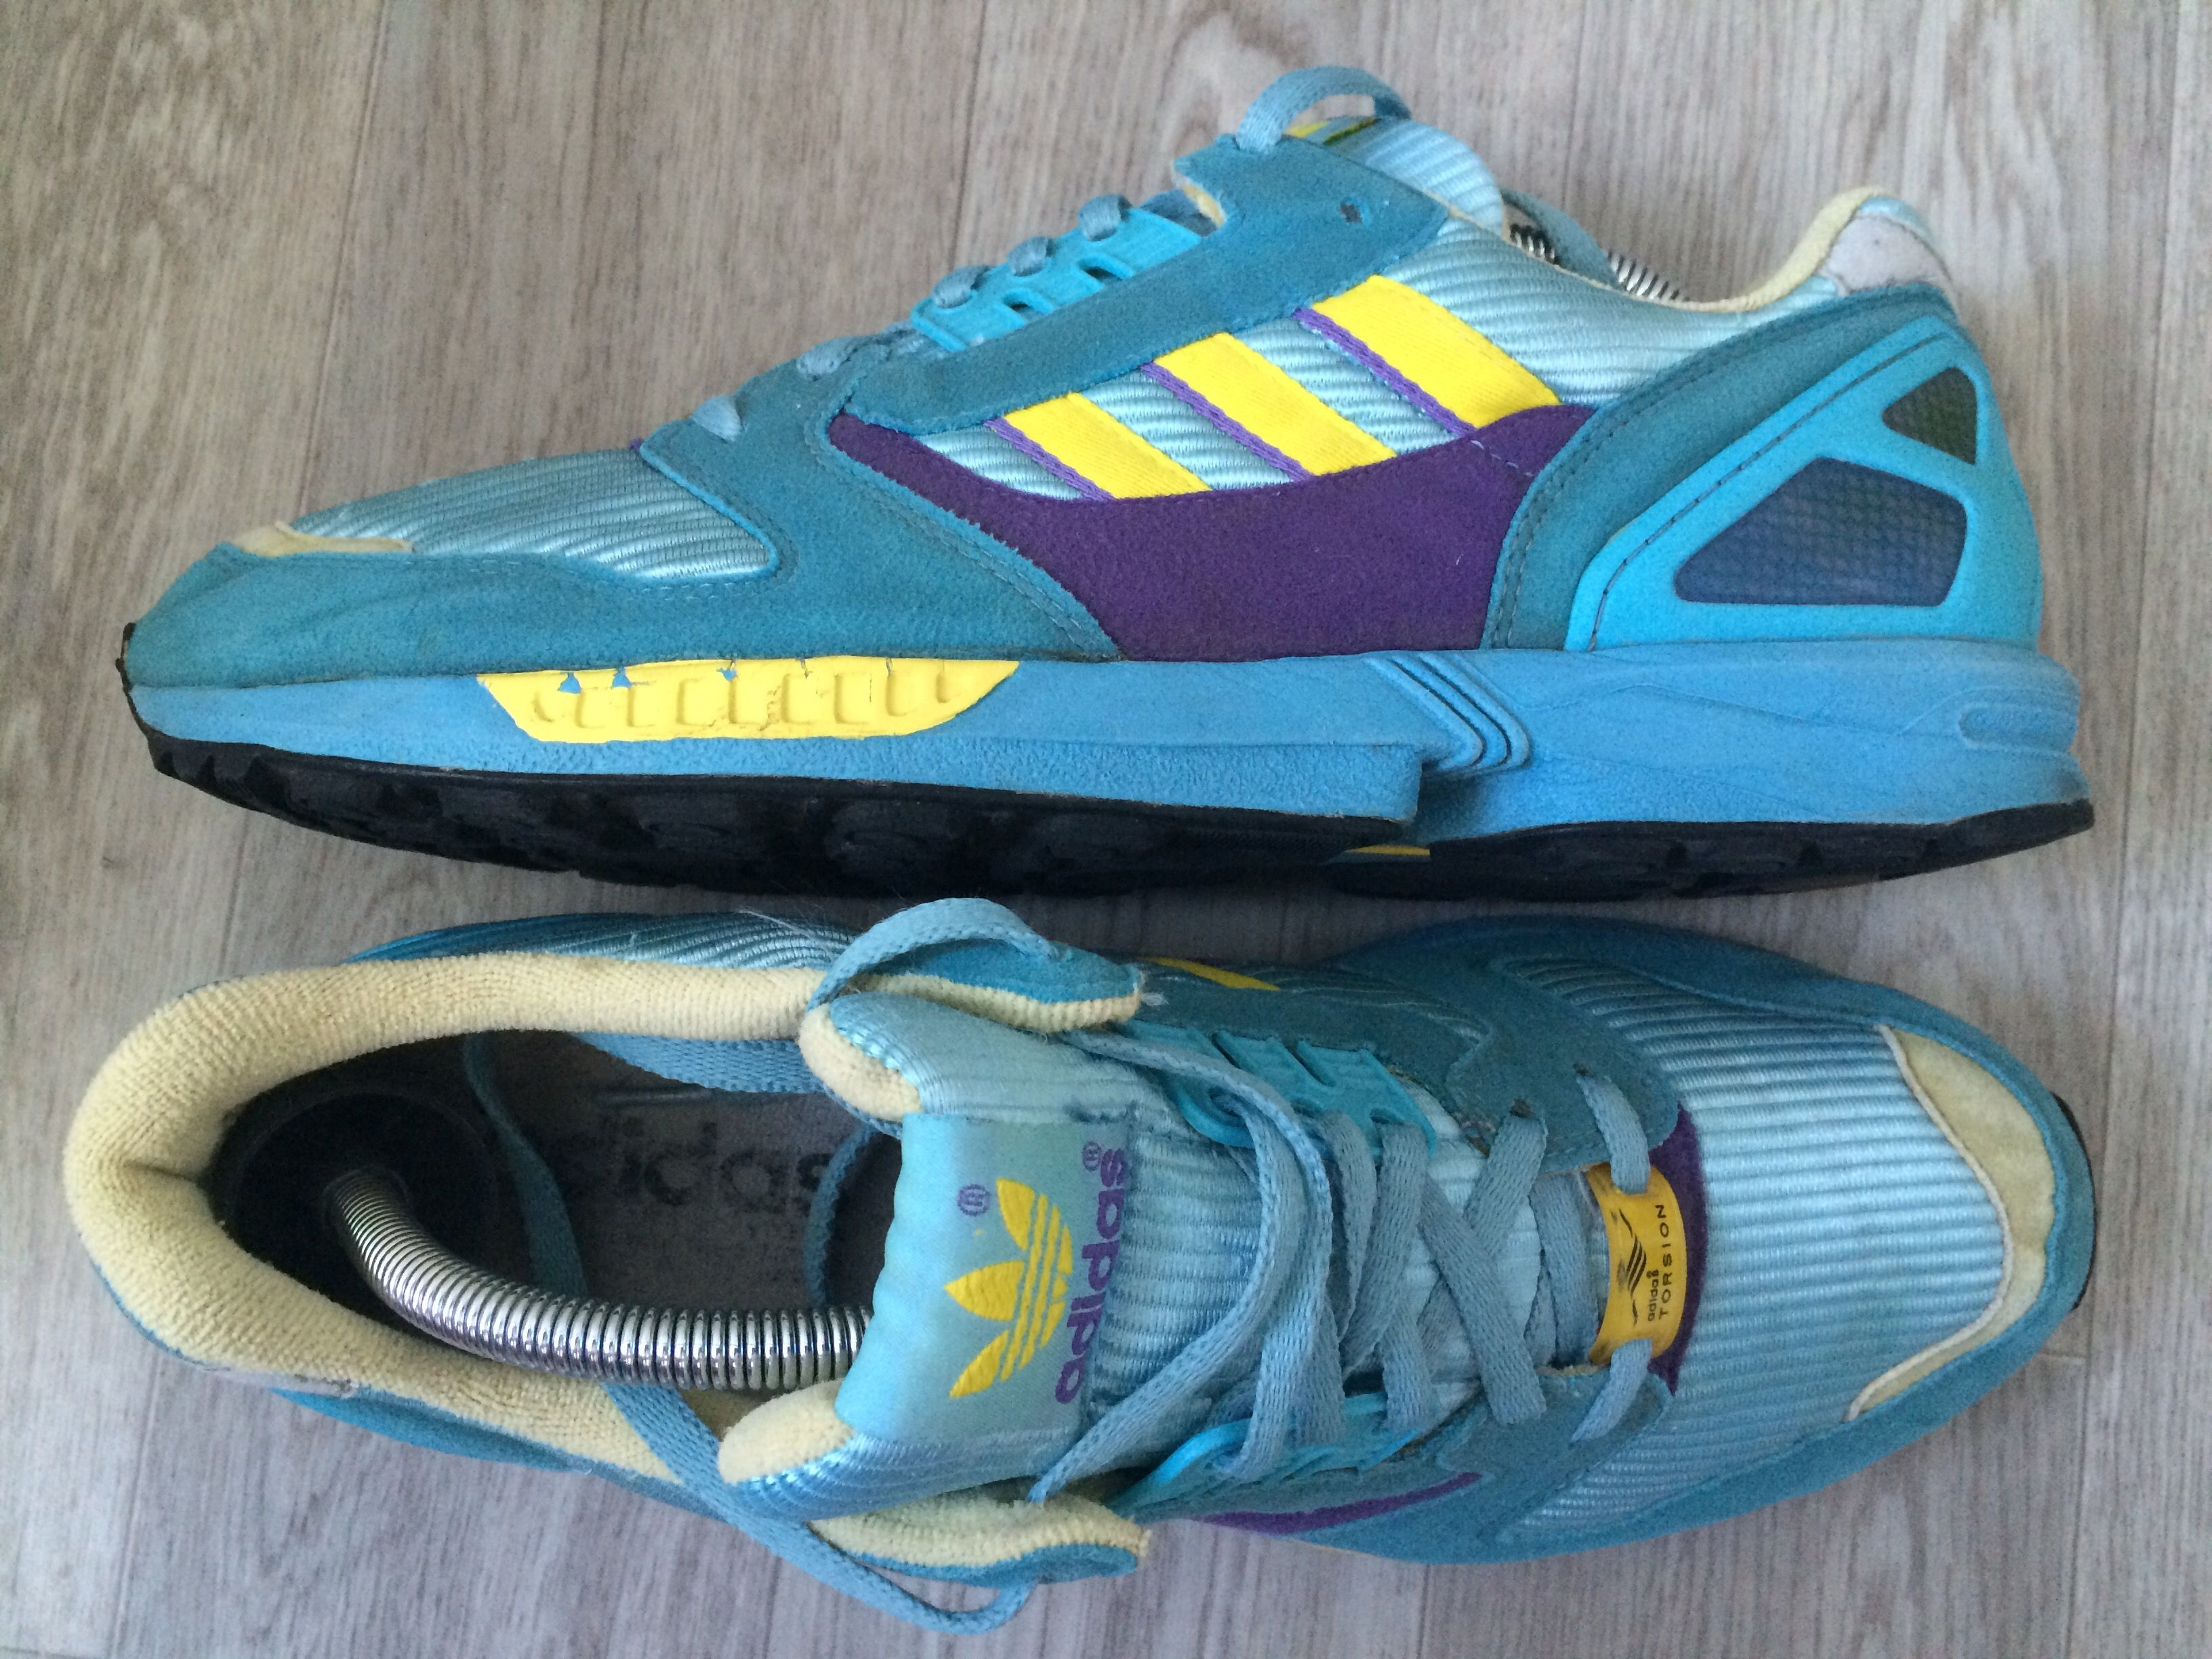 cb0a0fd6e42c Adidas ZX 8000. Article  087852. Release  1998. Made in Thailand.   adidasvintage  adidaszx8000